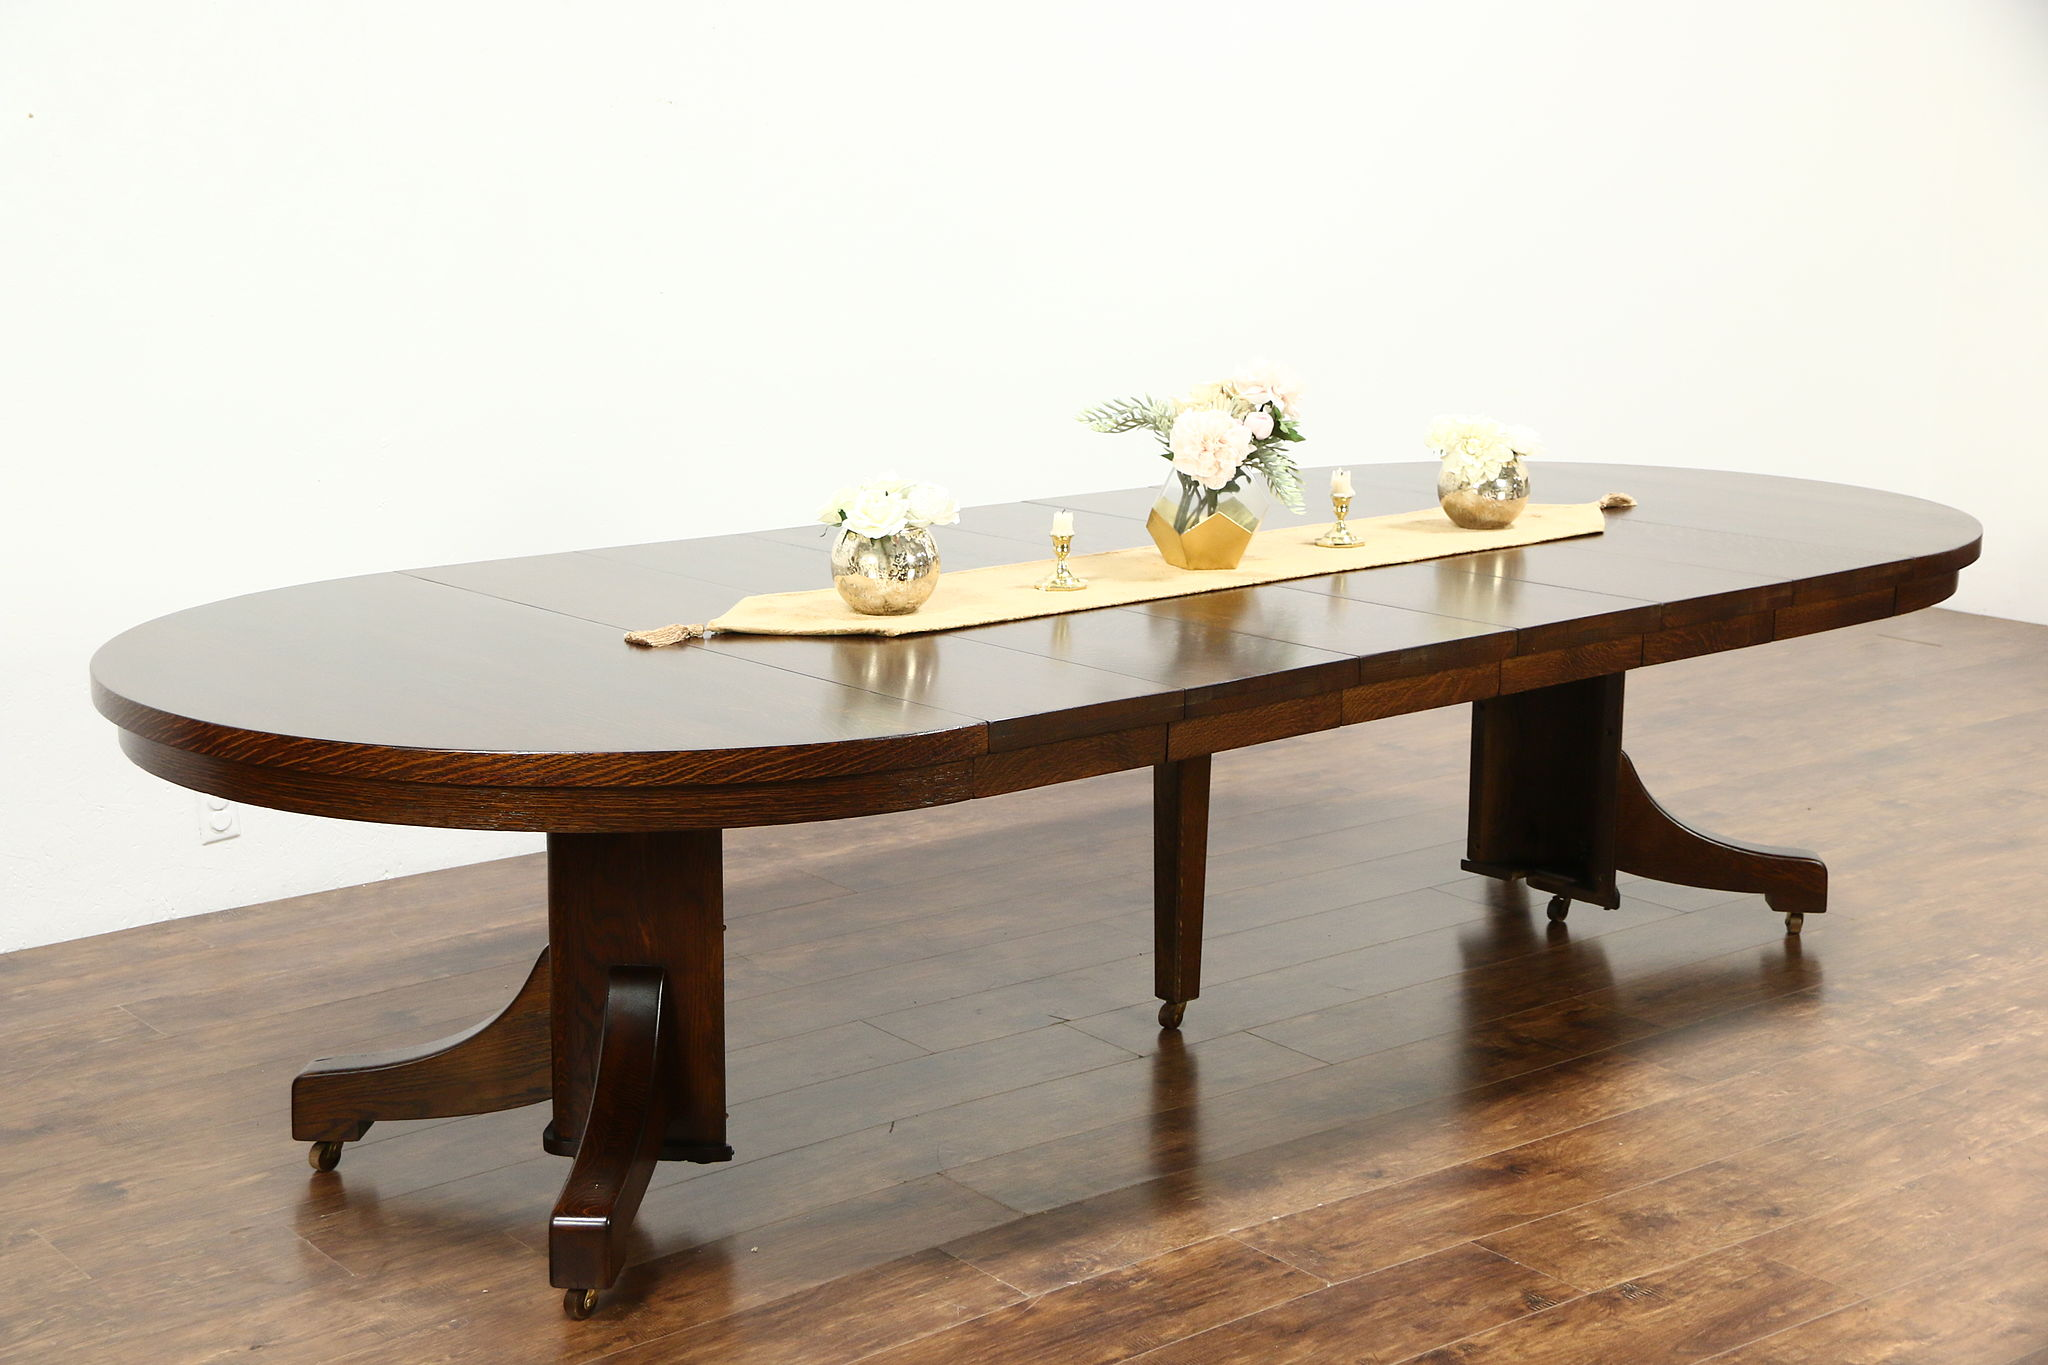 Unique Round Dining Table that Extends Light of Dining Room : tab7 28 17oak from www.lightofdiningroom.com size 2700 x 1800 jpeg 339kB